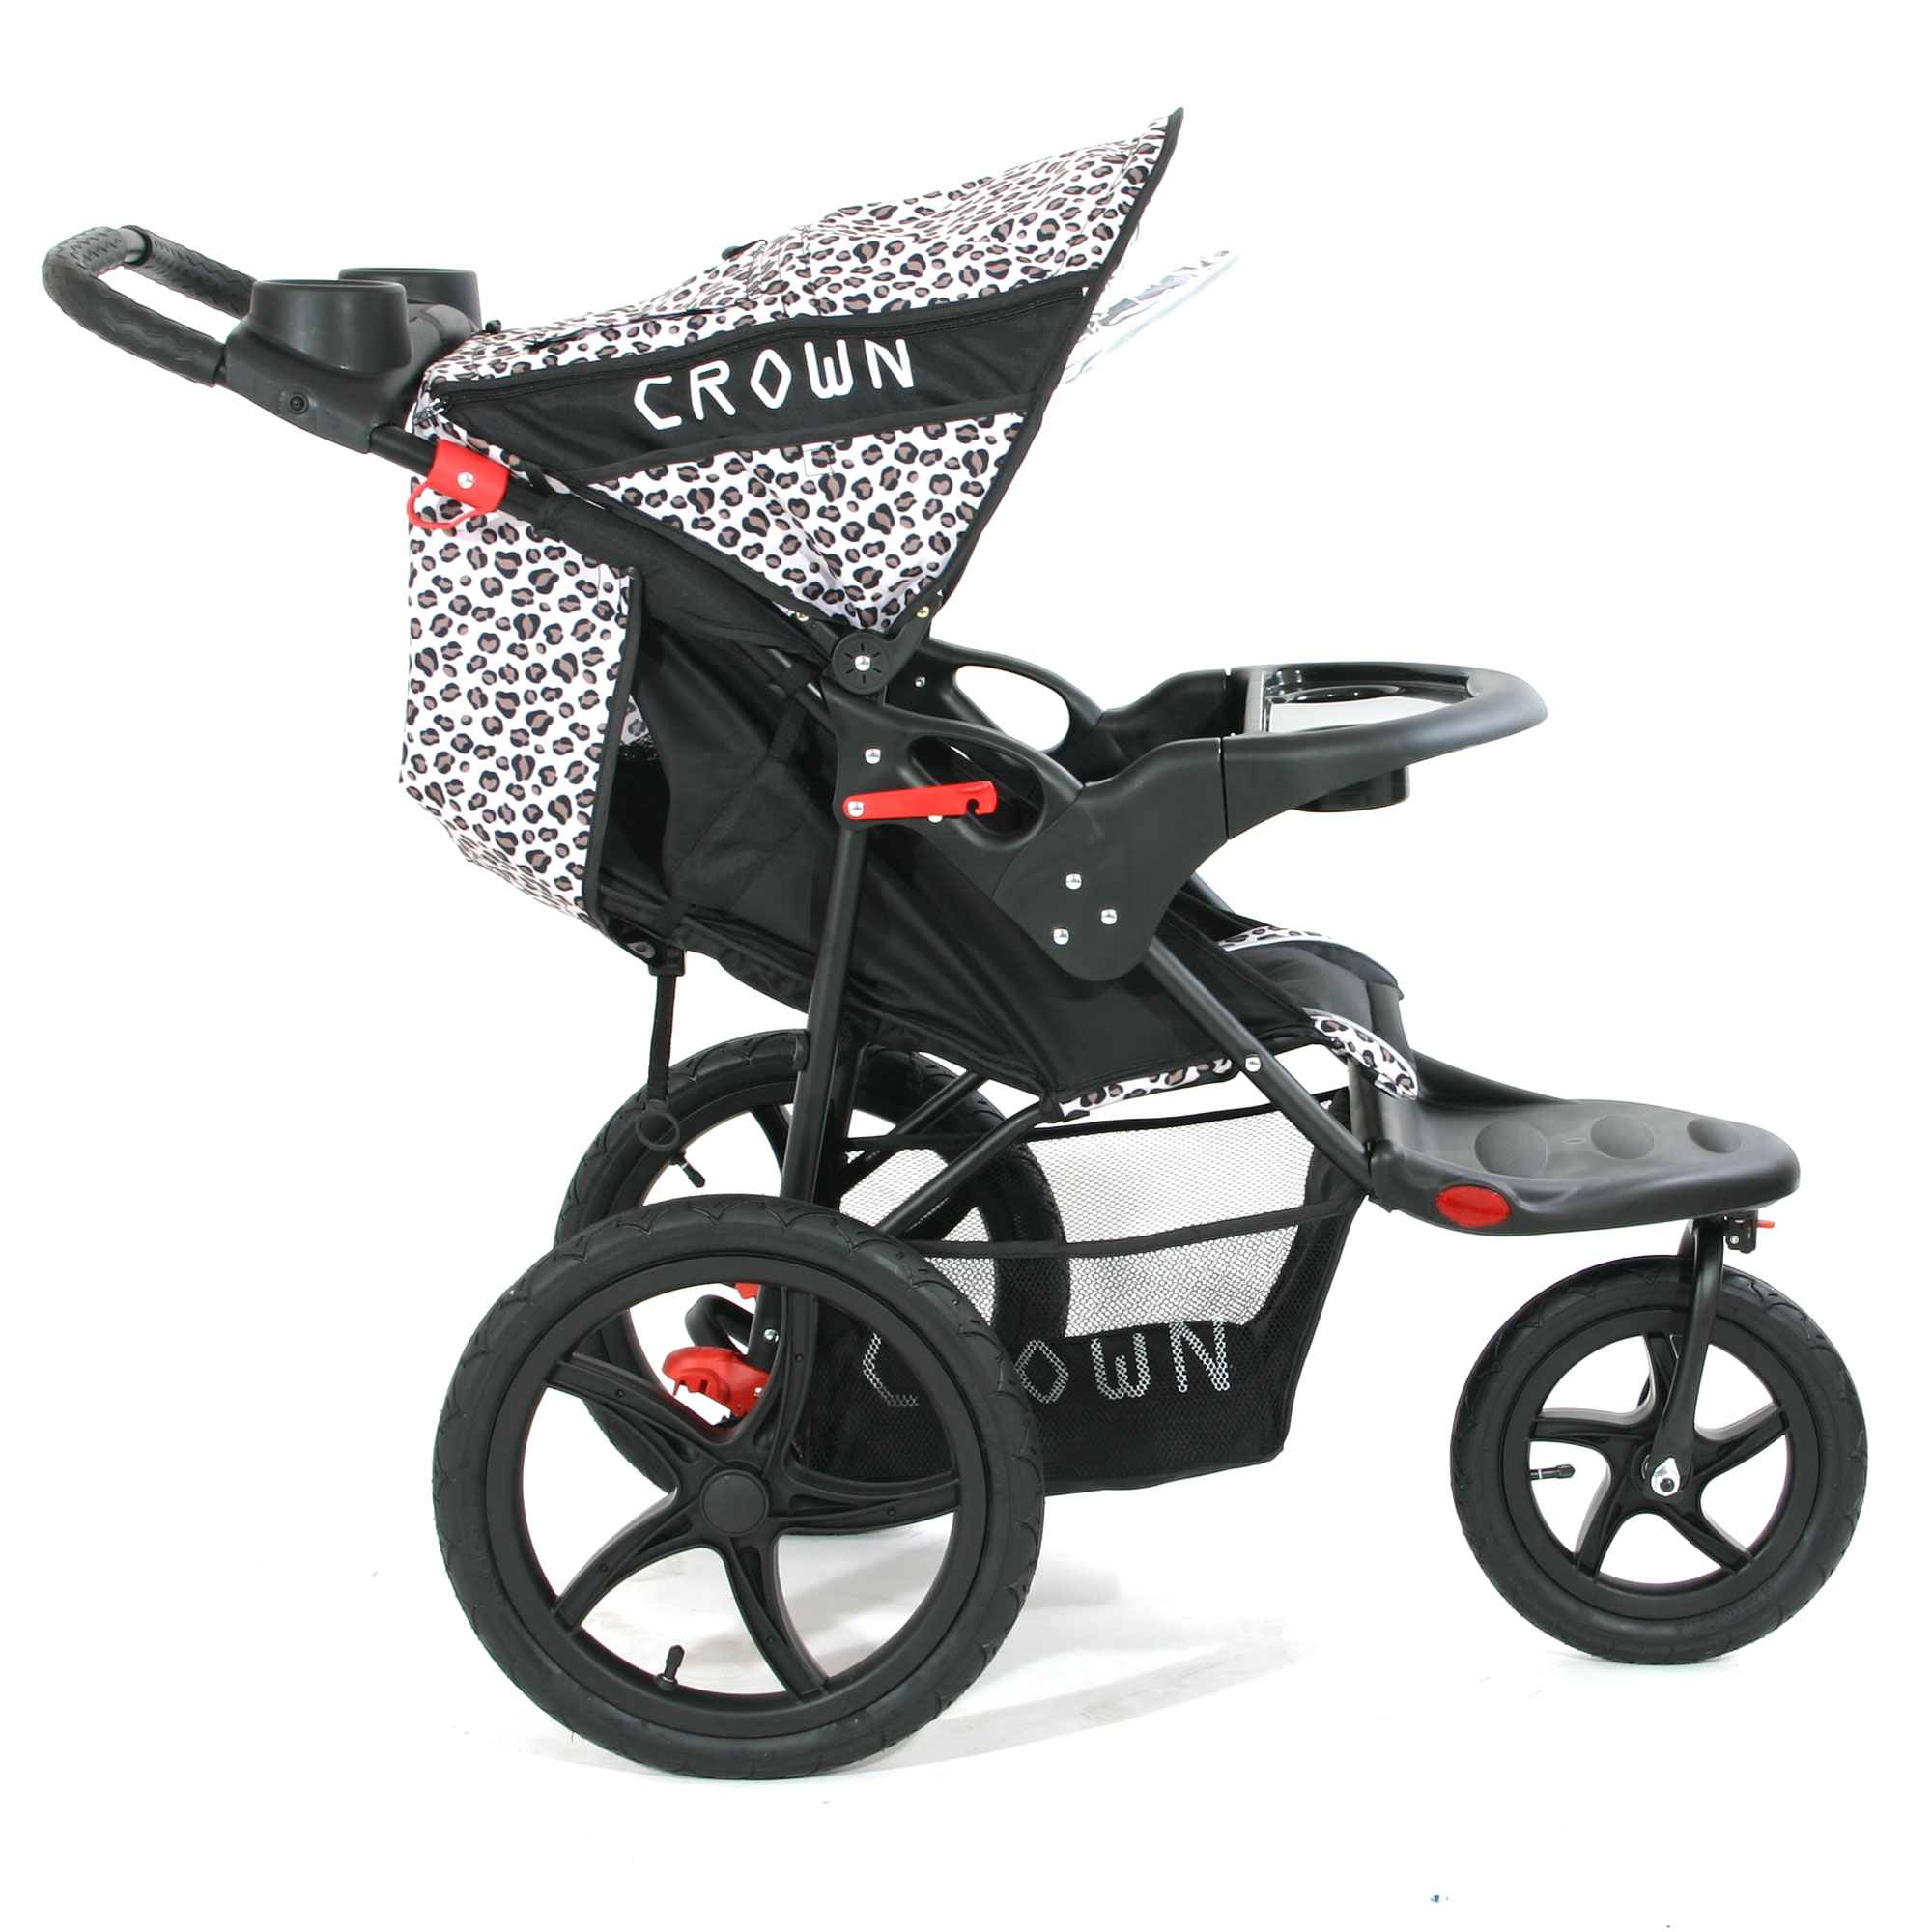 crown st930 16 zoll kinderwagen jogger leopard. Black Bedroom Furniture Sets. Home Design Ideas